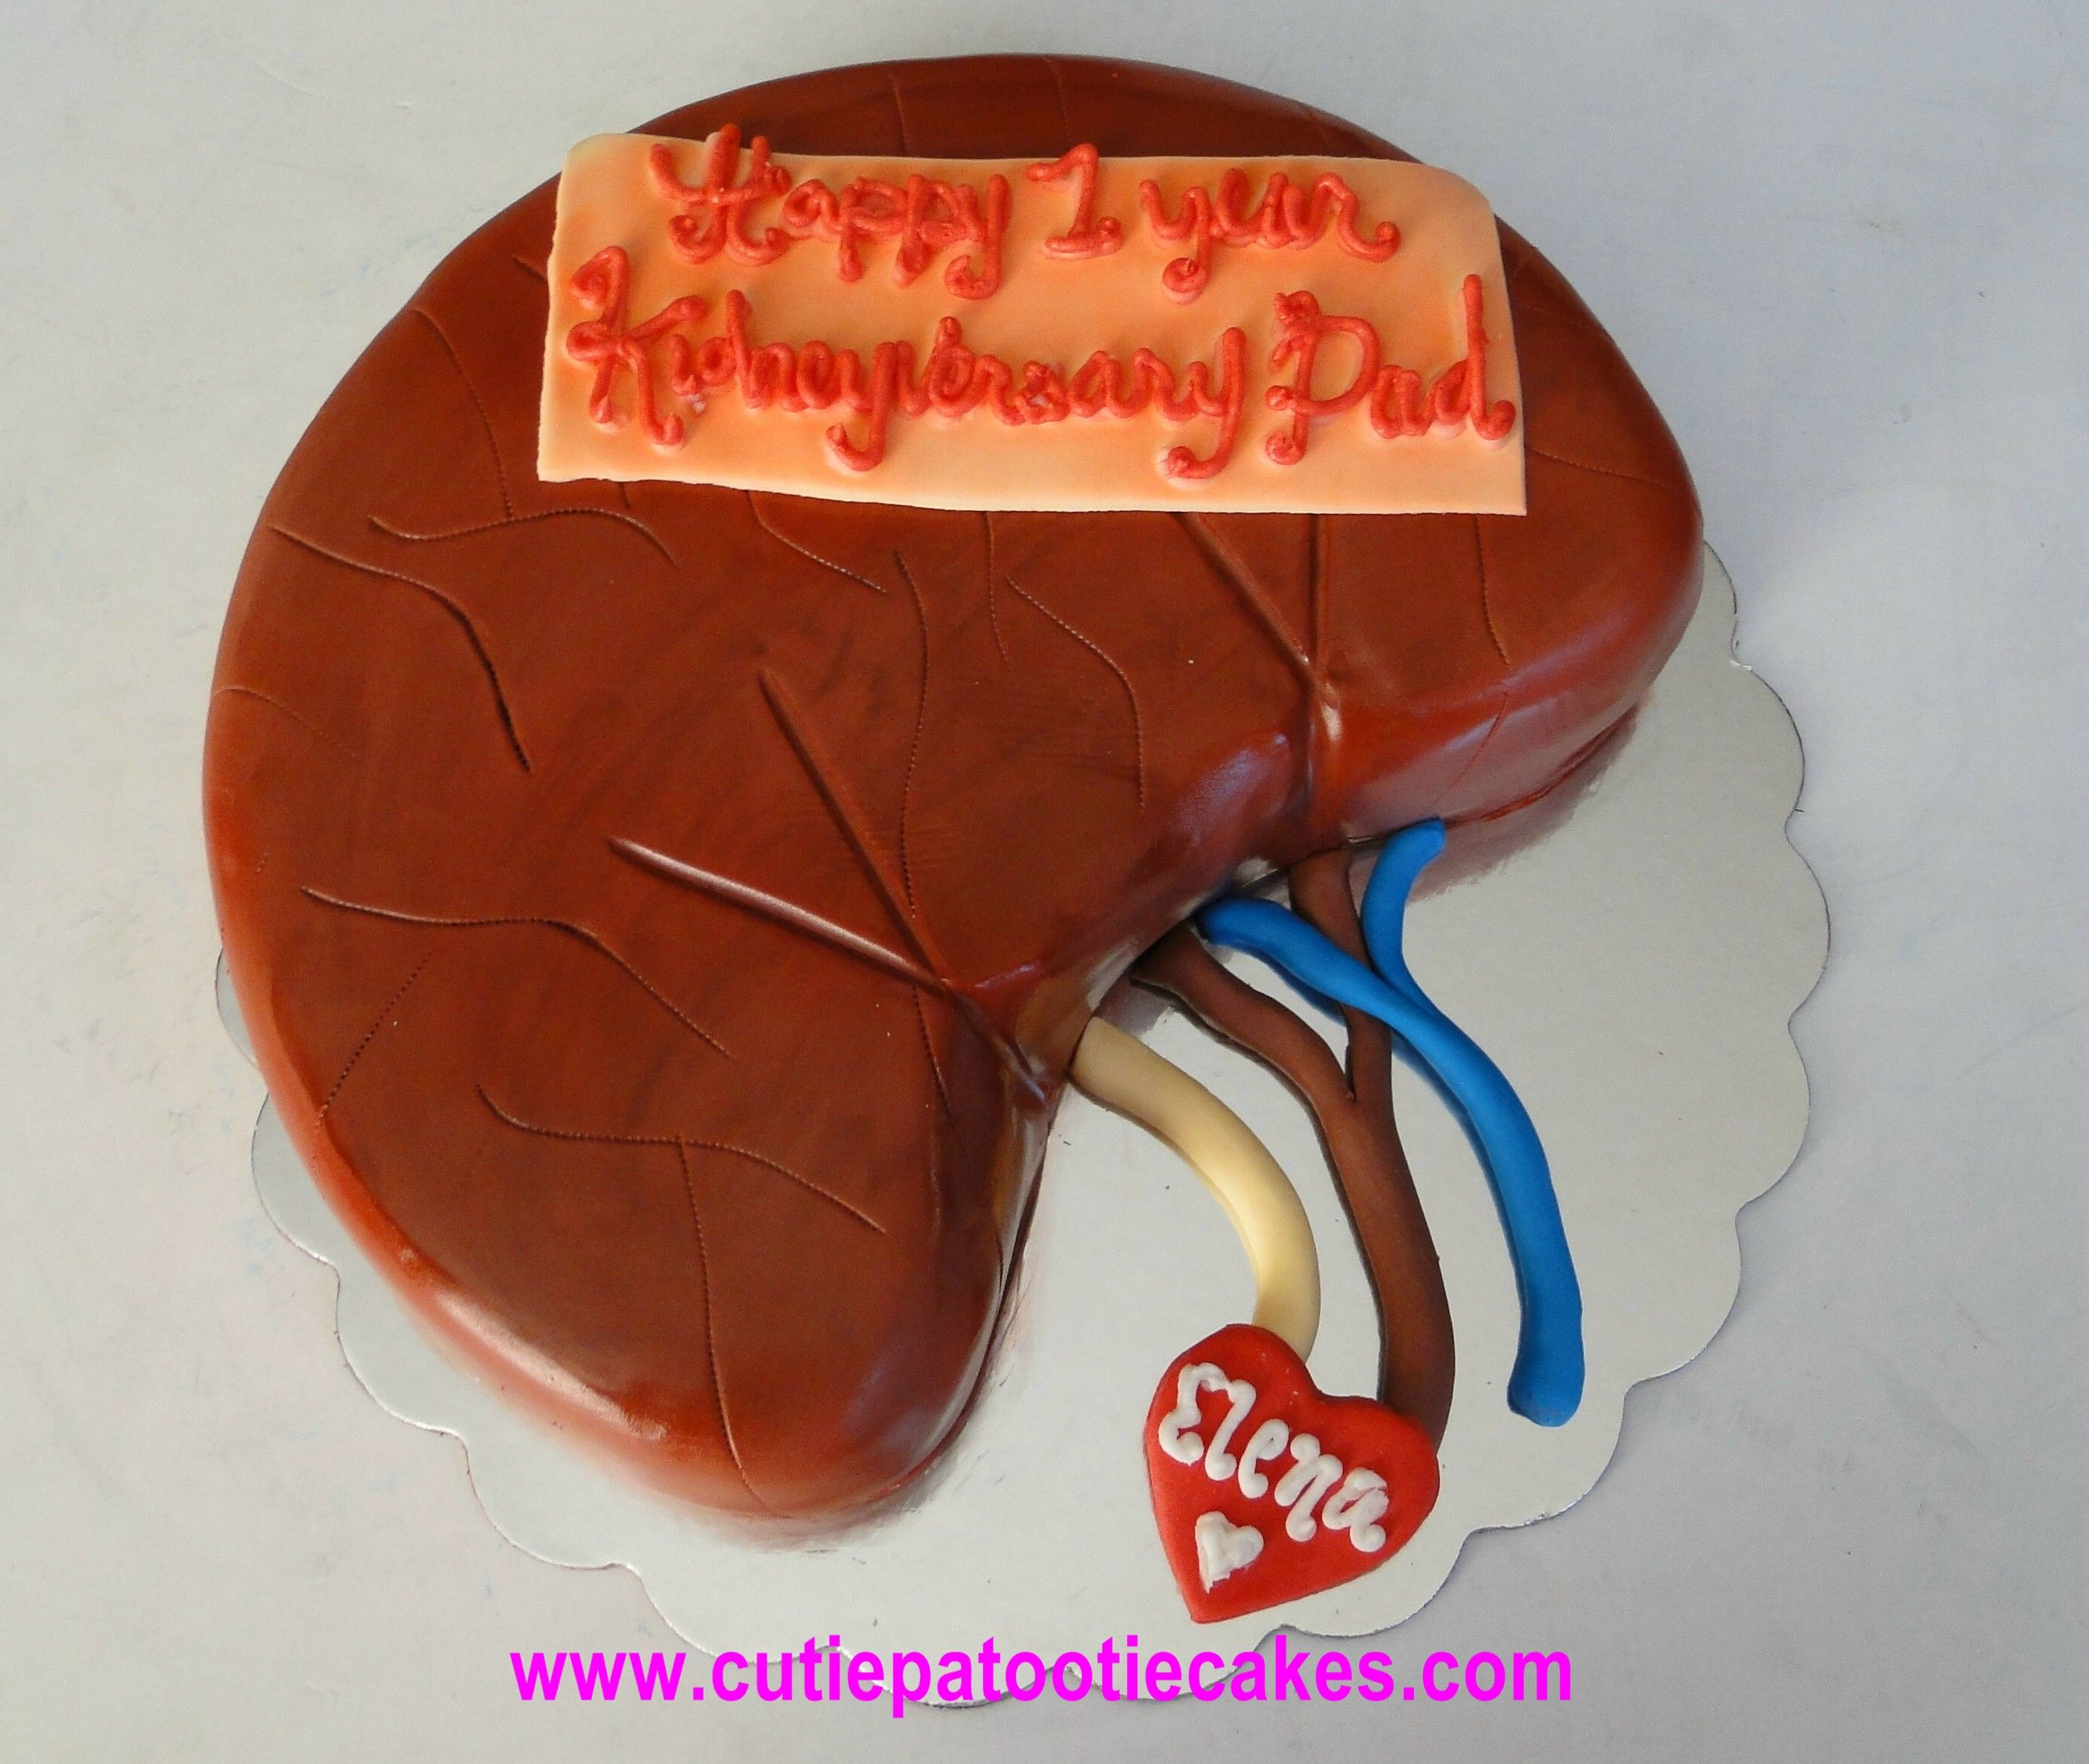 How To Make A Kidney Shaped Cake